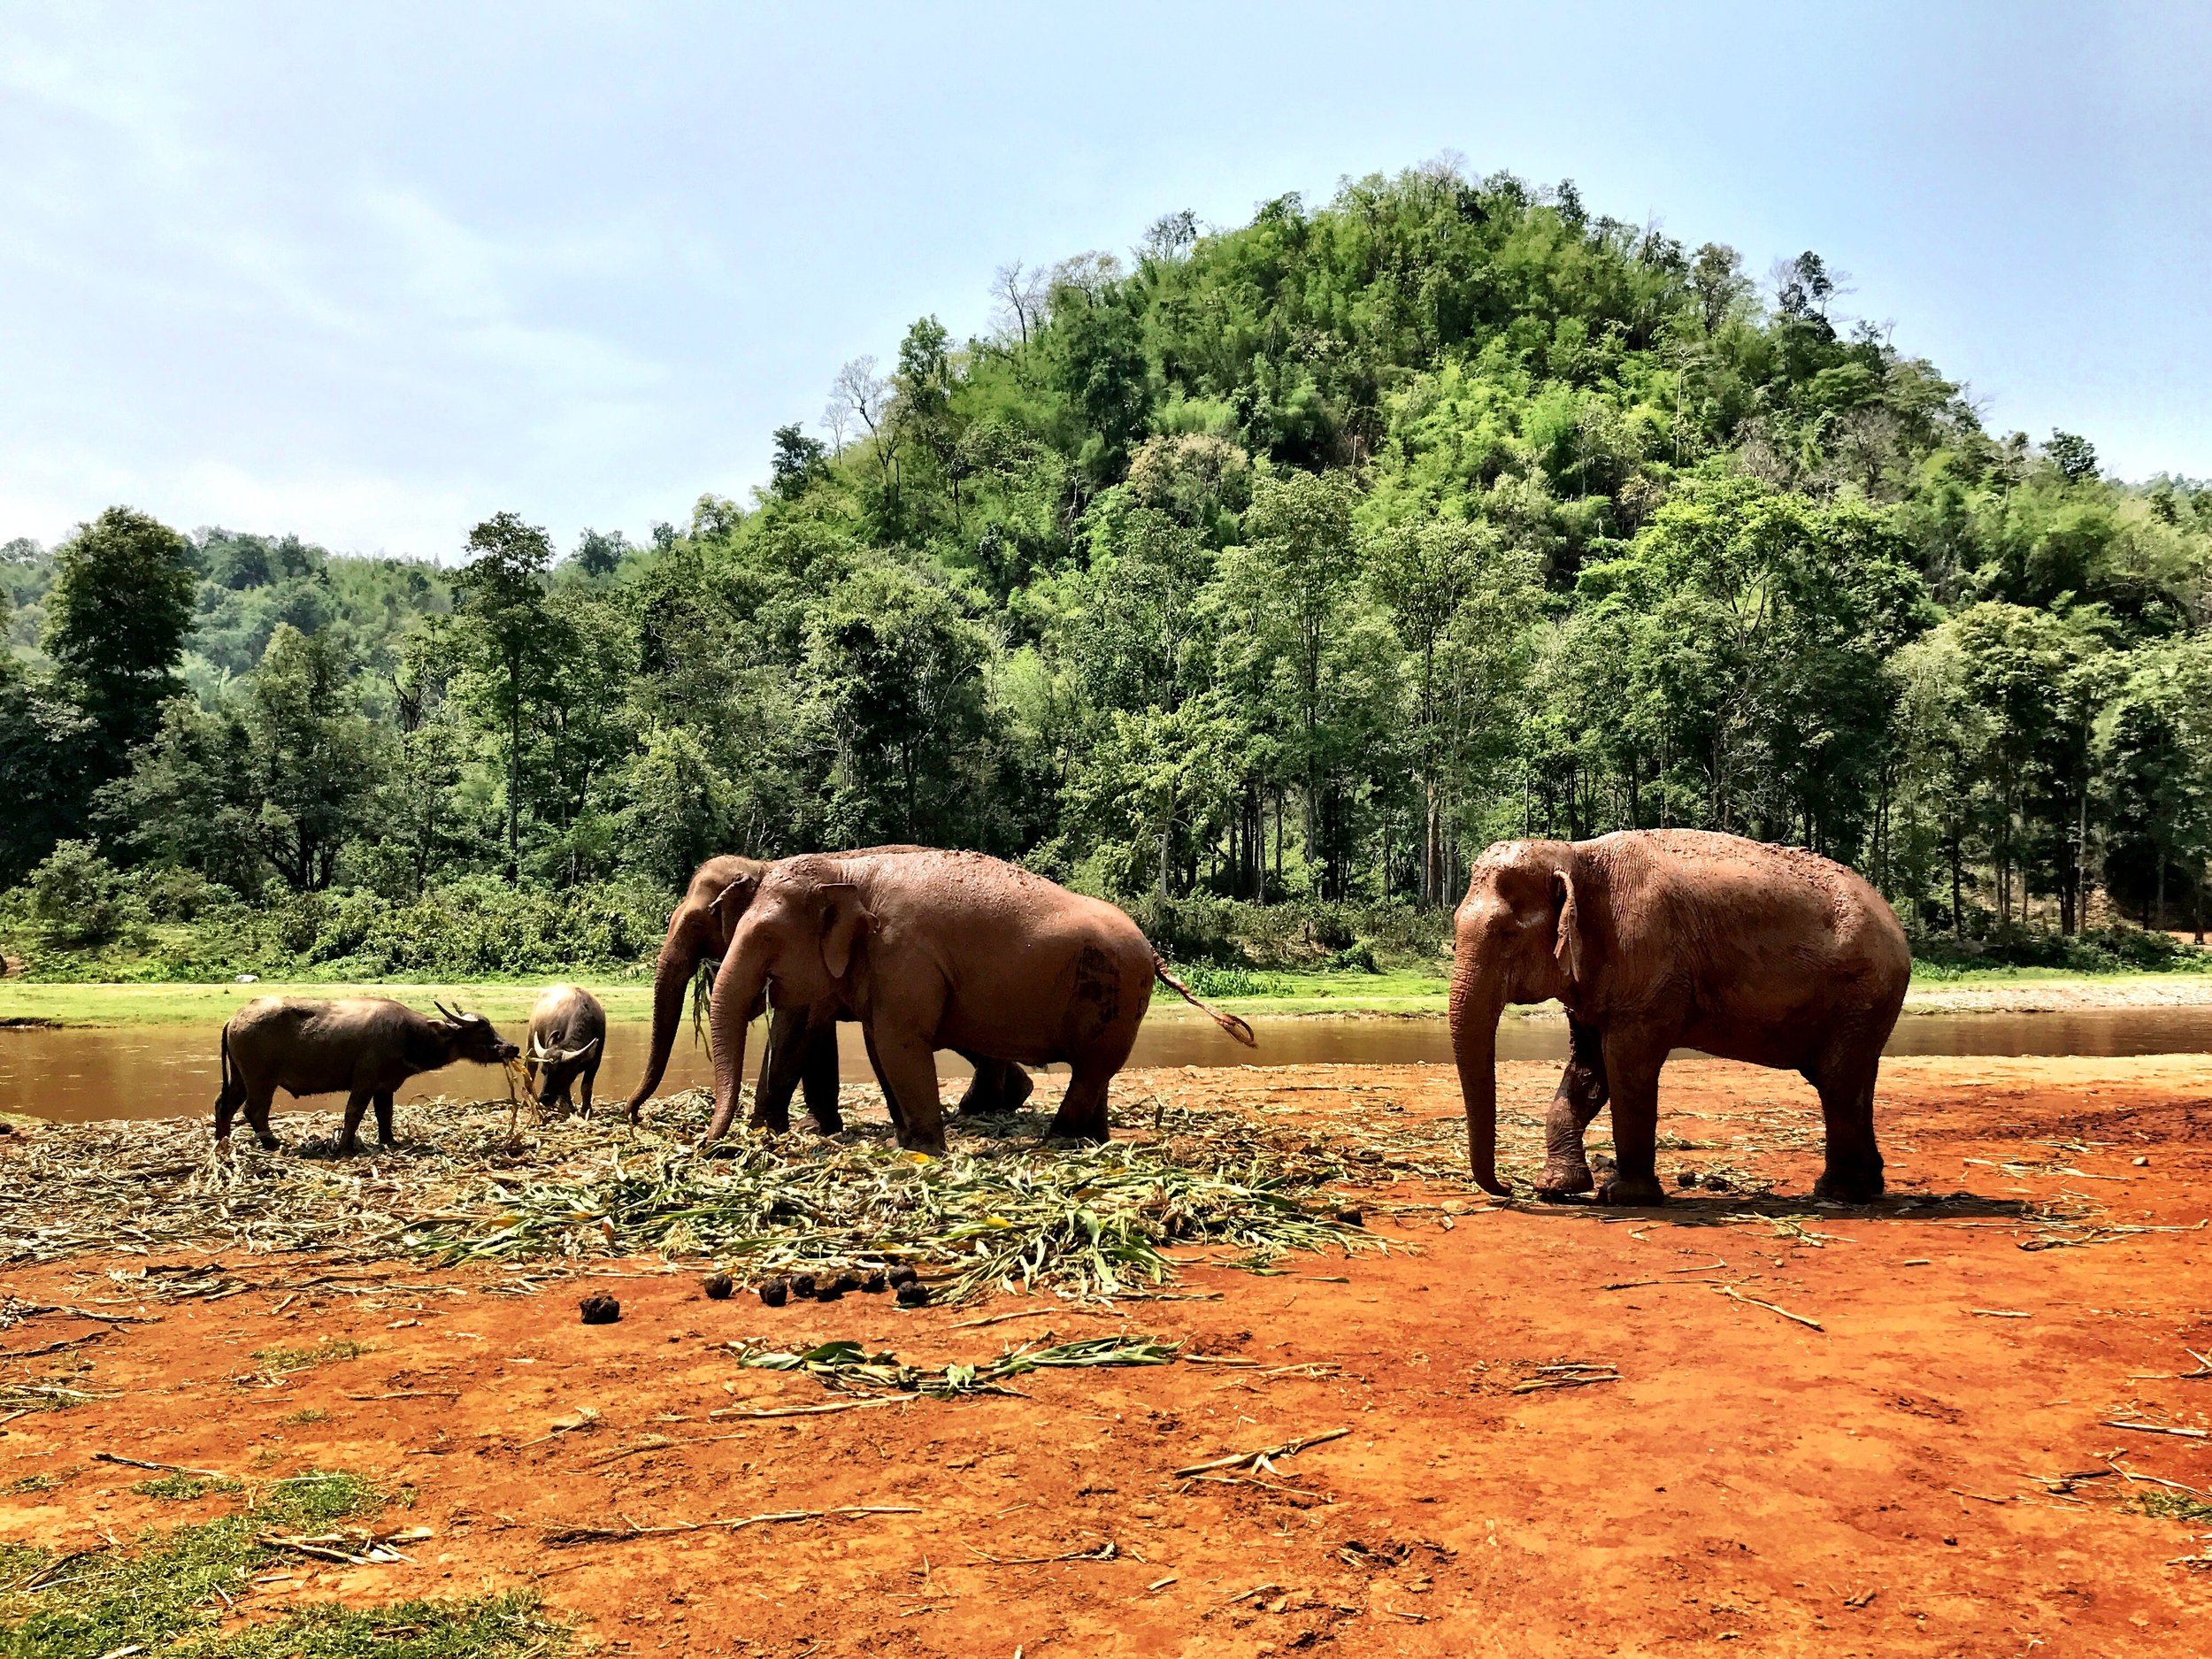 Water buffalo coexist with the elephants at the park, one of the highest-rated sanctuaries in Northern Thailand